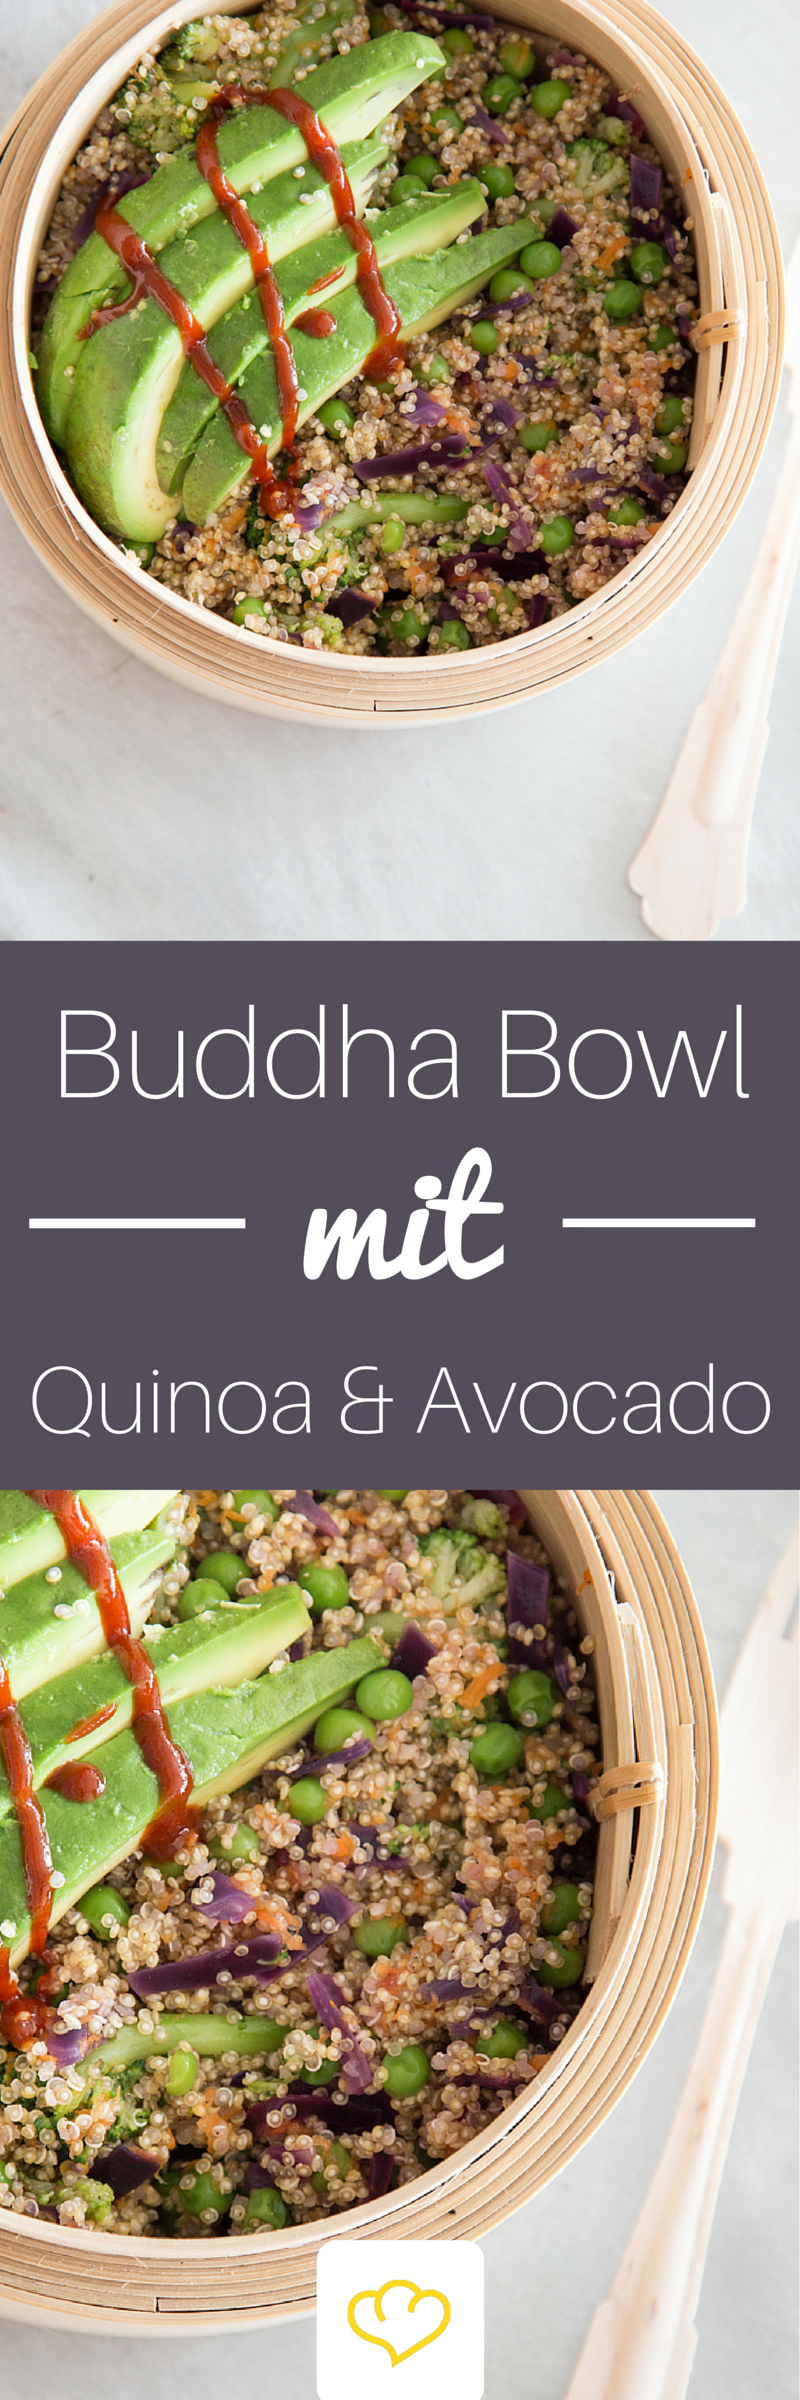 Superfood Buddha Bowl with quinoa and avocado -  Superfood Buddha Bowl with quinoa and avocado More